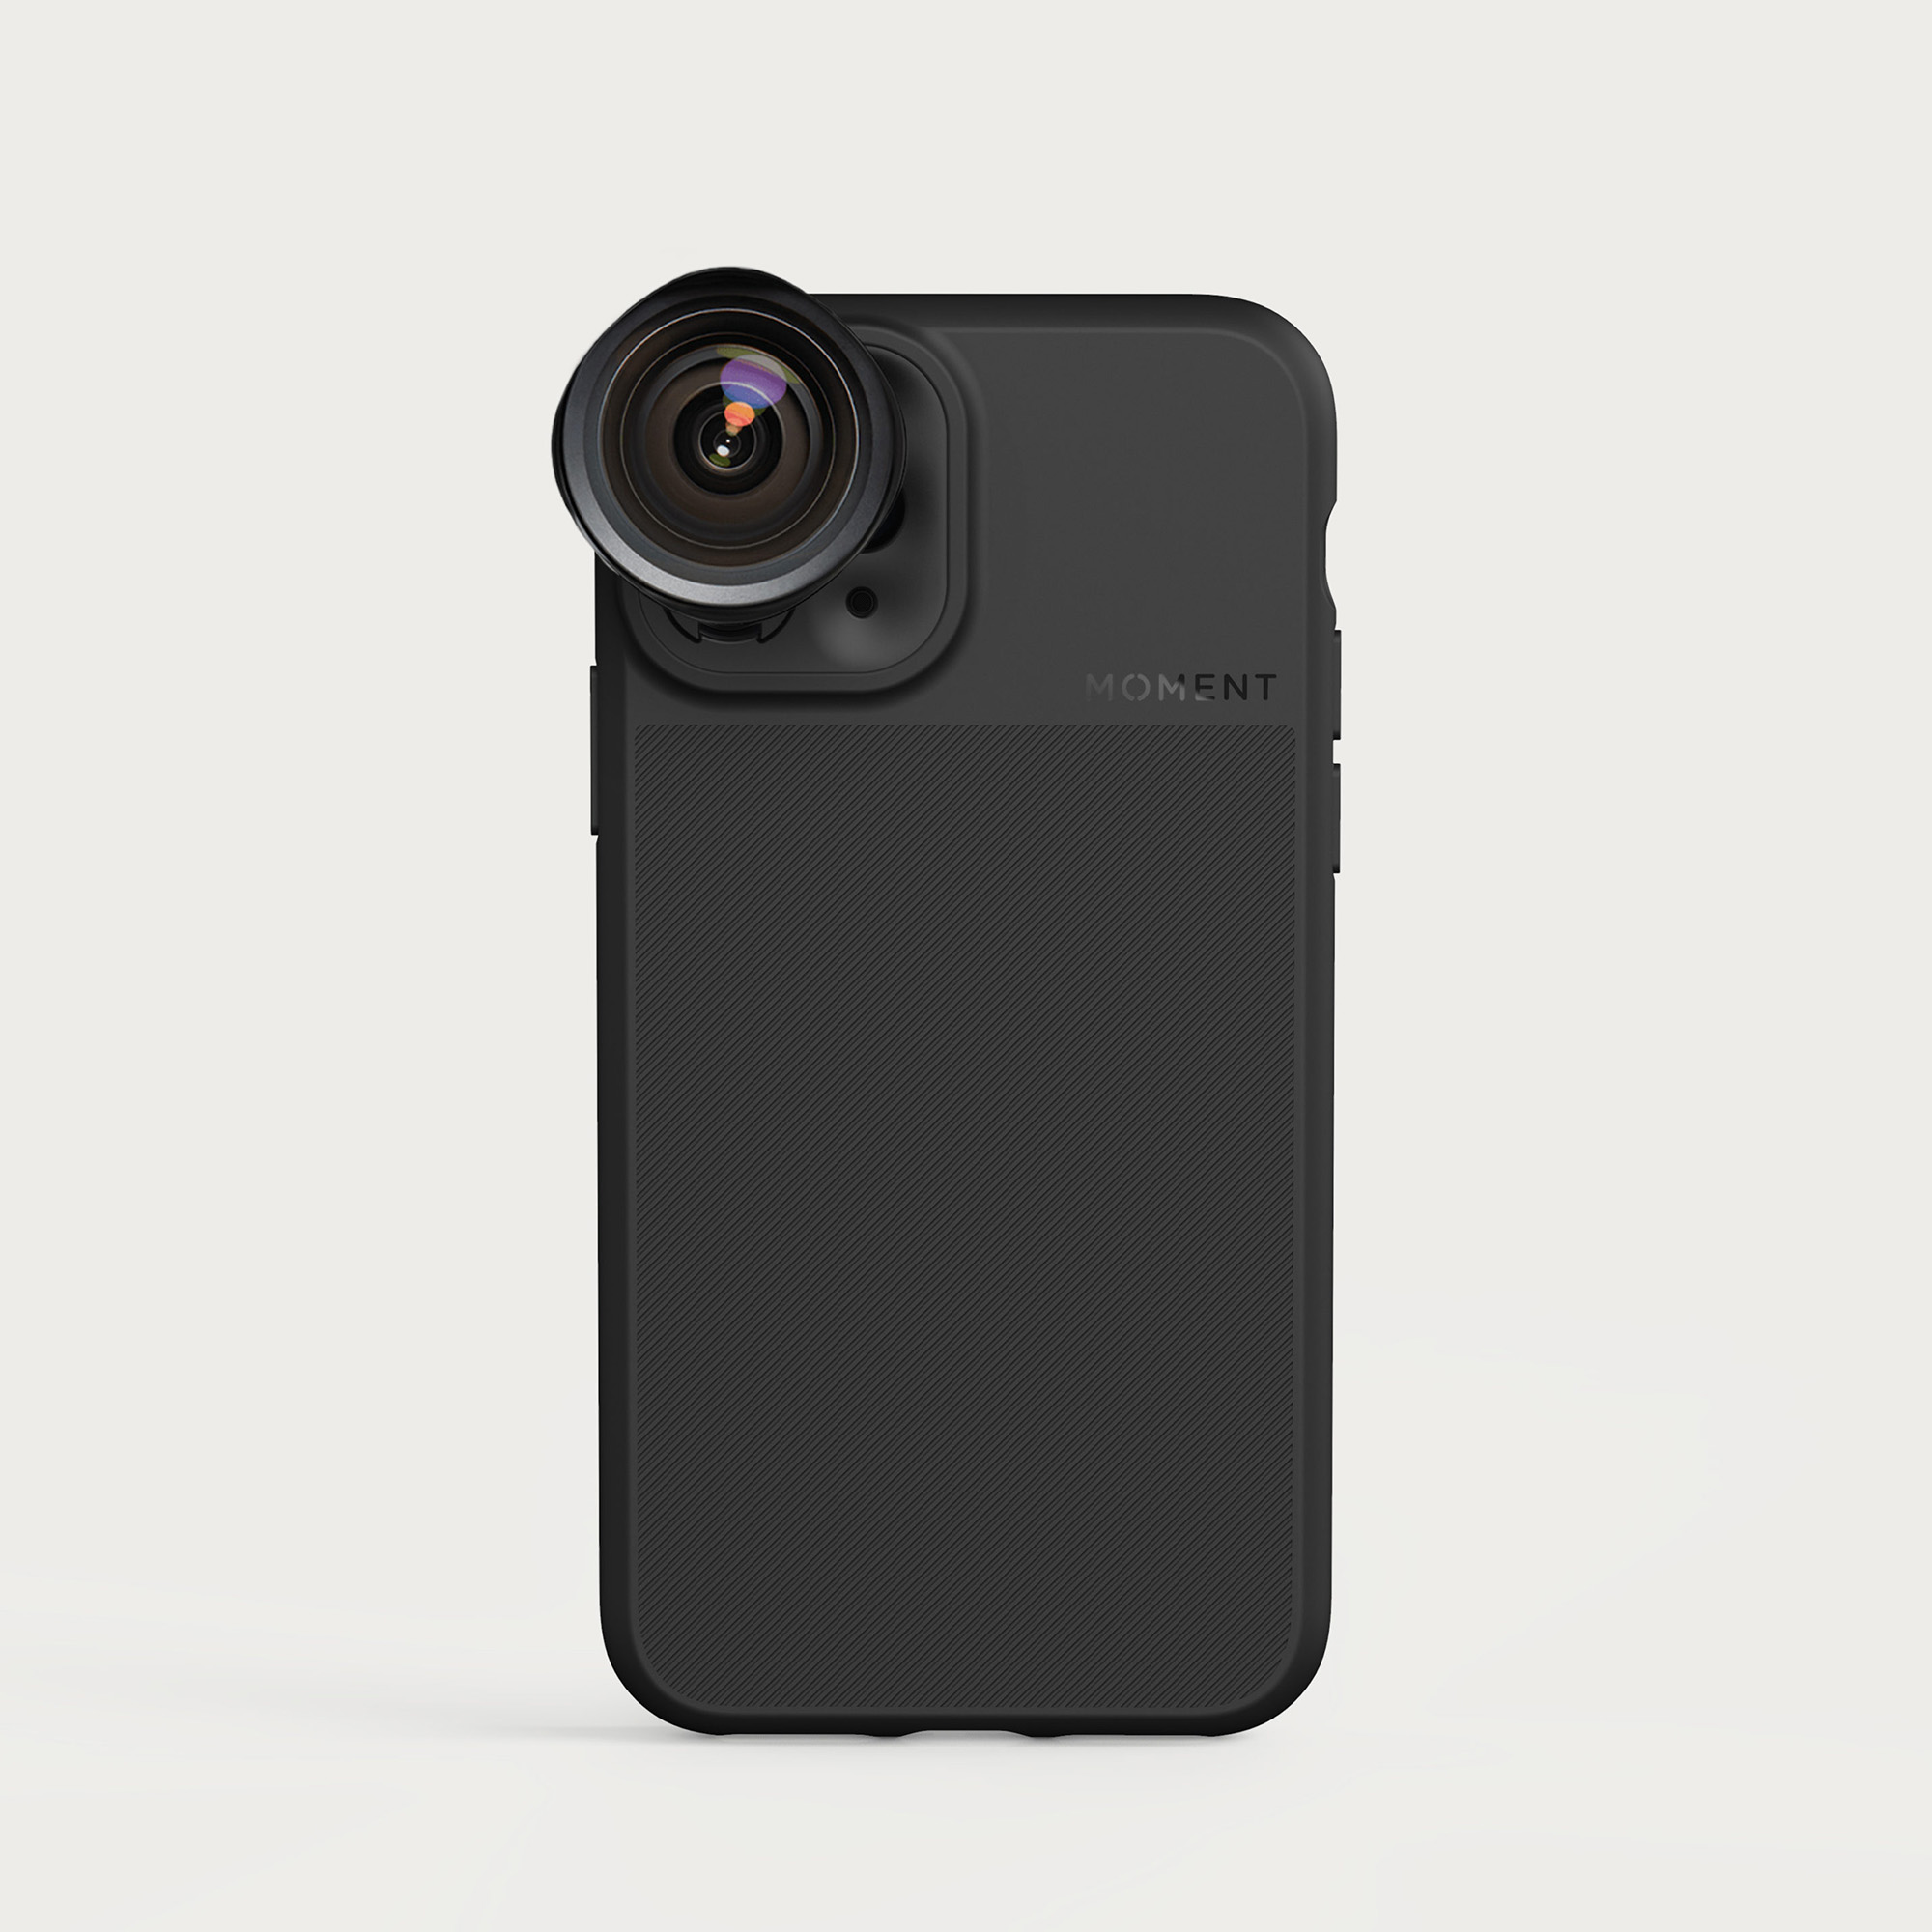 Moment iPhone Thin Photo Case